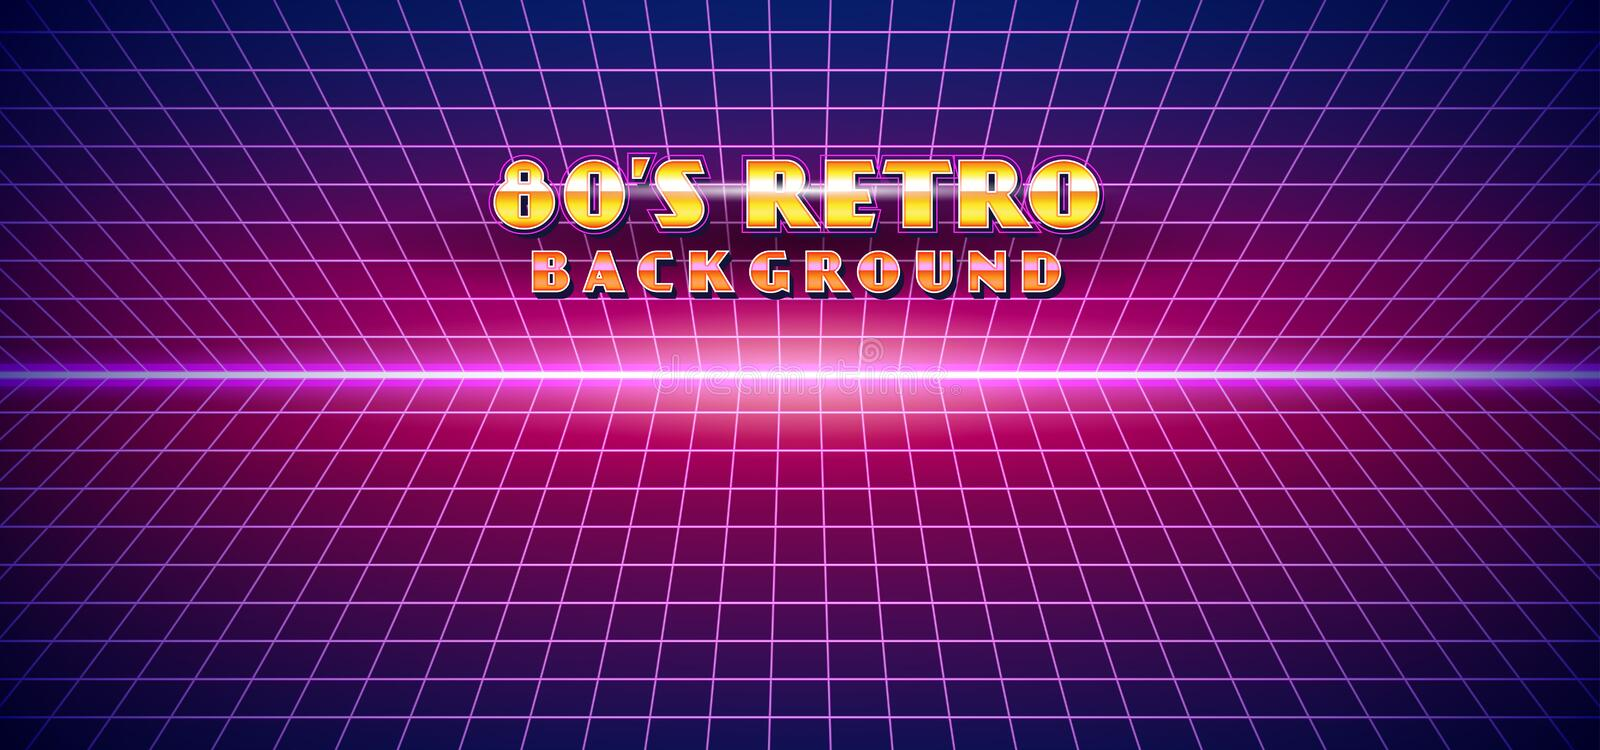 Retro futuristic 1980s style landscape background. 80s Sci-fi Cyber digital space surface grid with bright neon light effect vector illustration